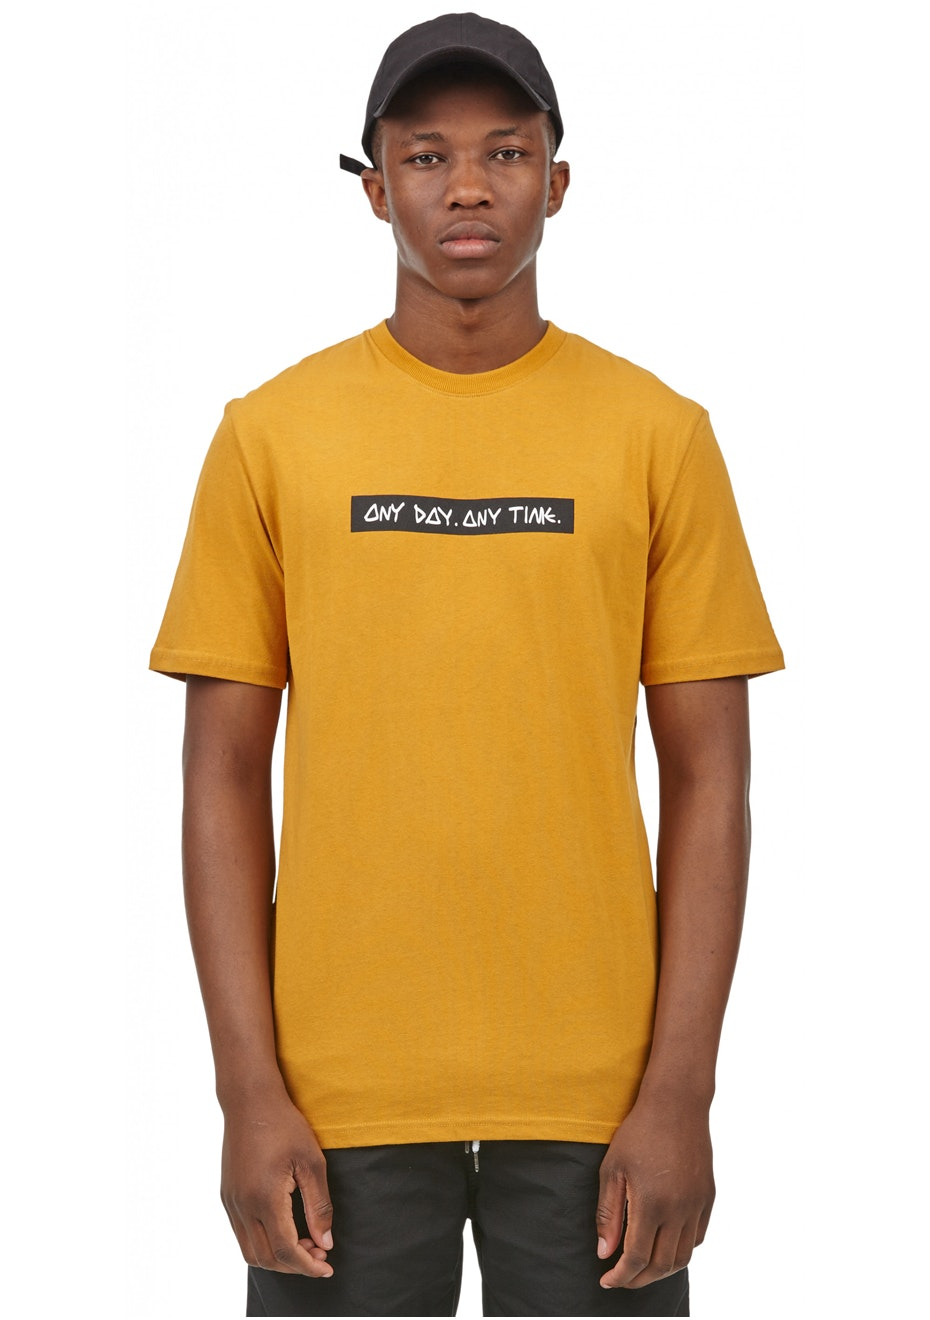 I Love Ugly - Any Day Tee - Yellow